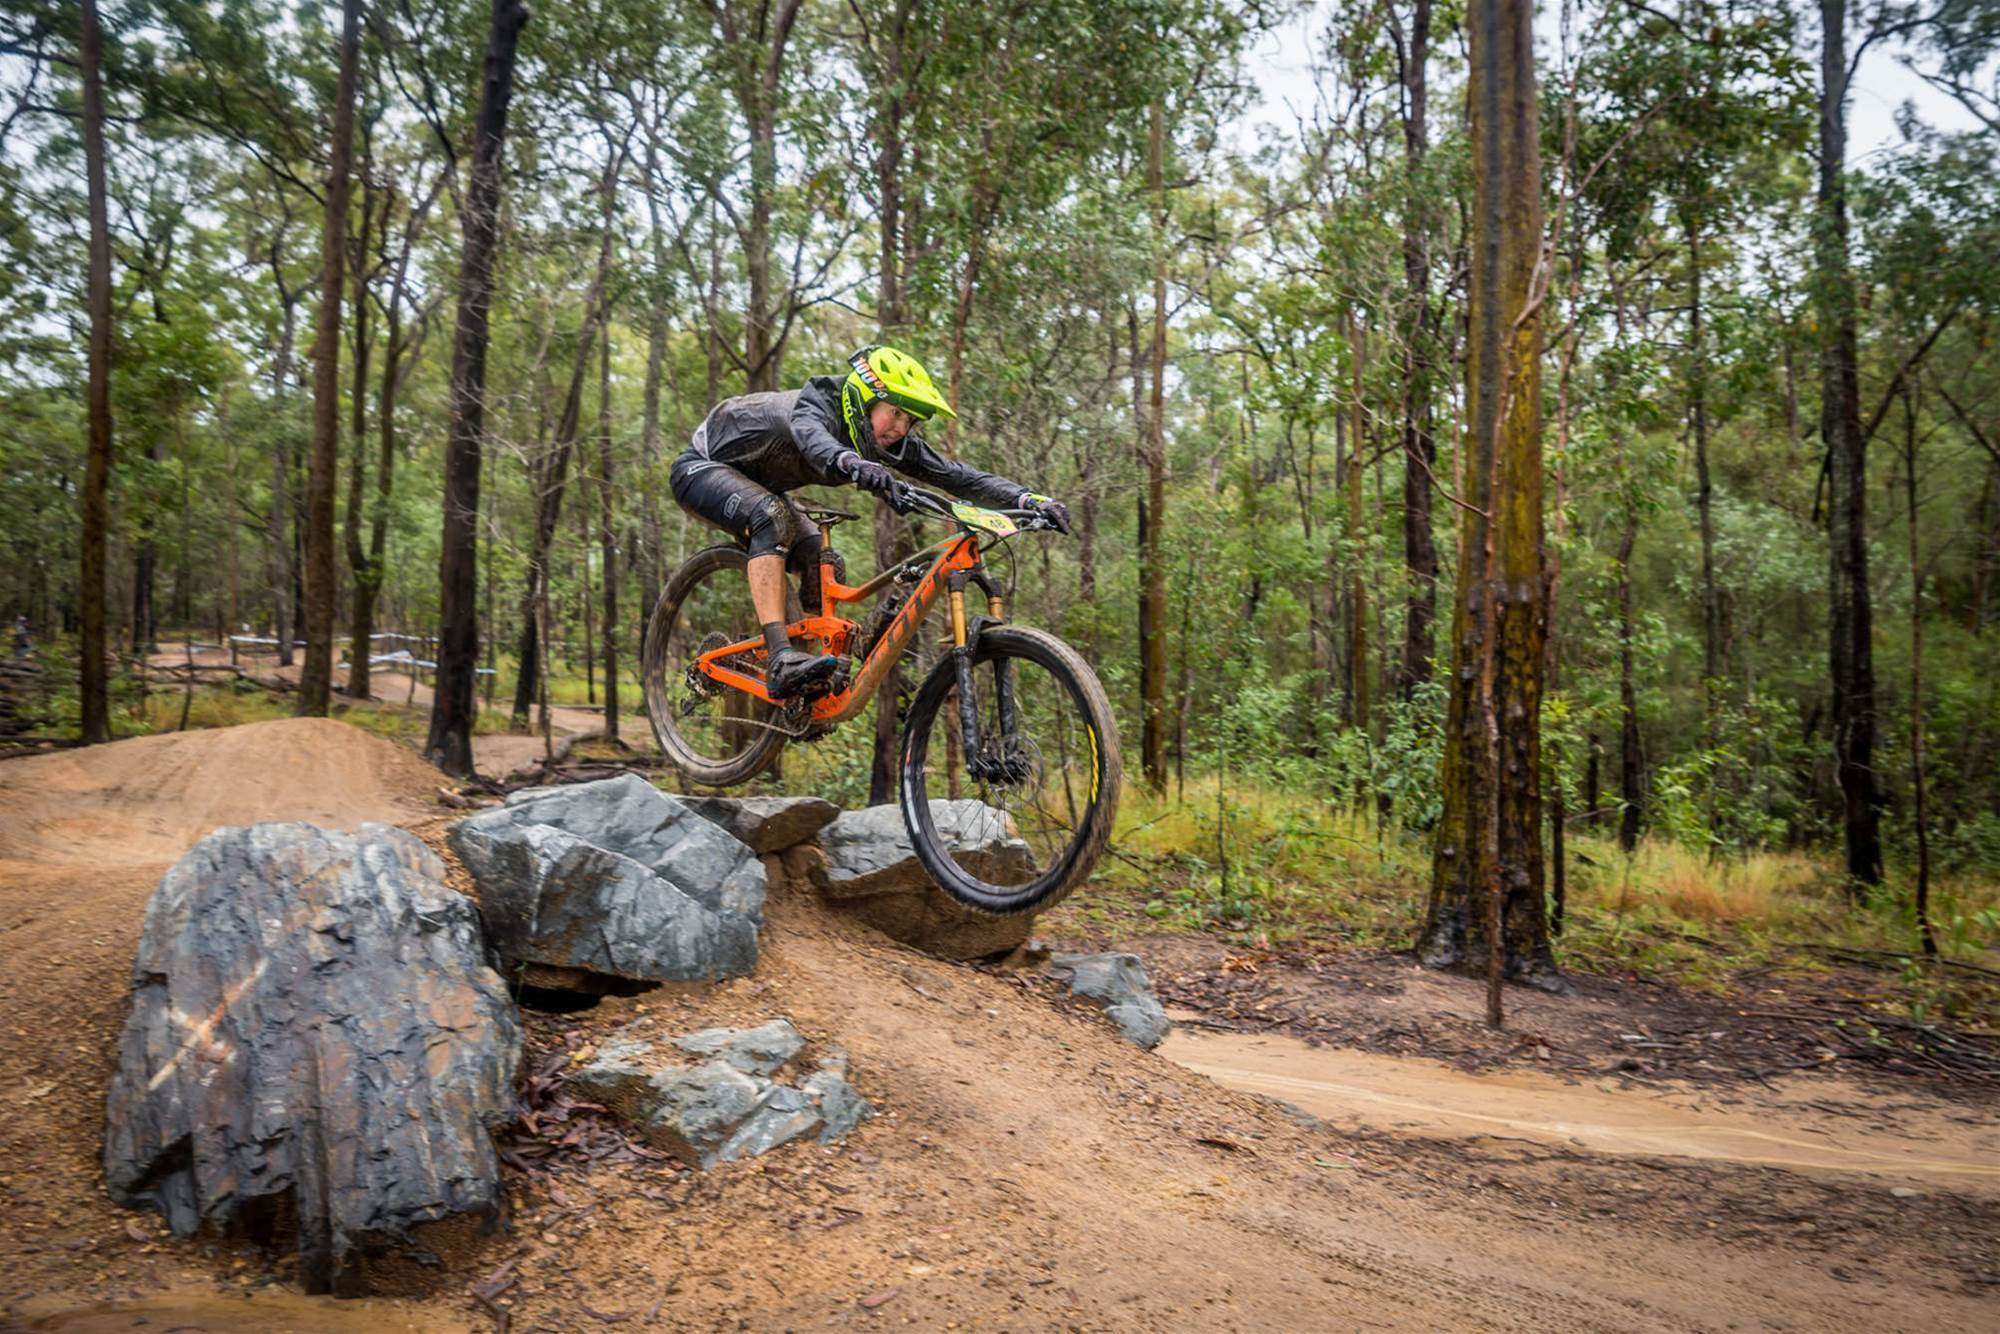 Wet and wild at the Shimano Enduro Gold Coast